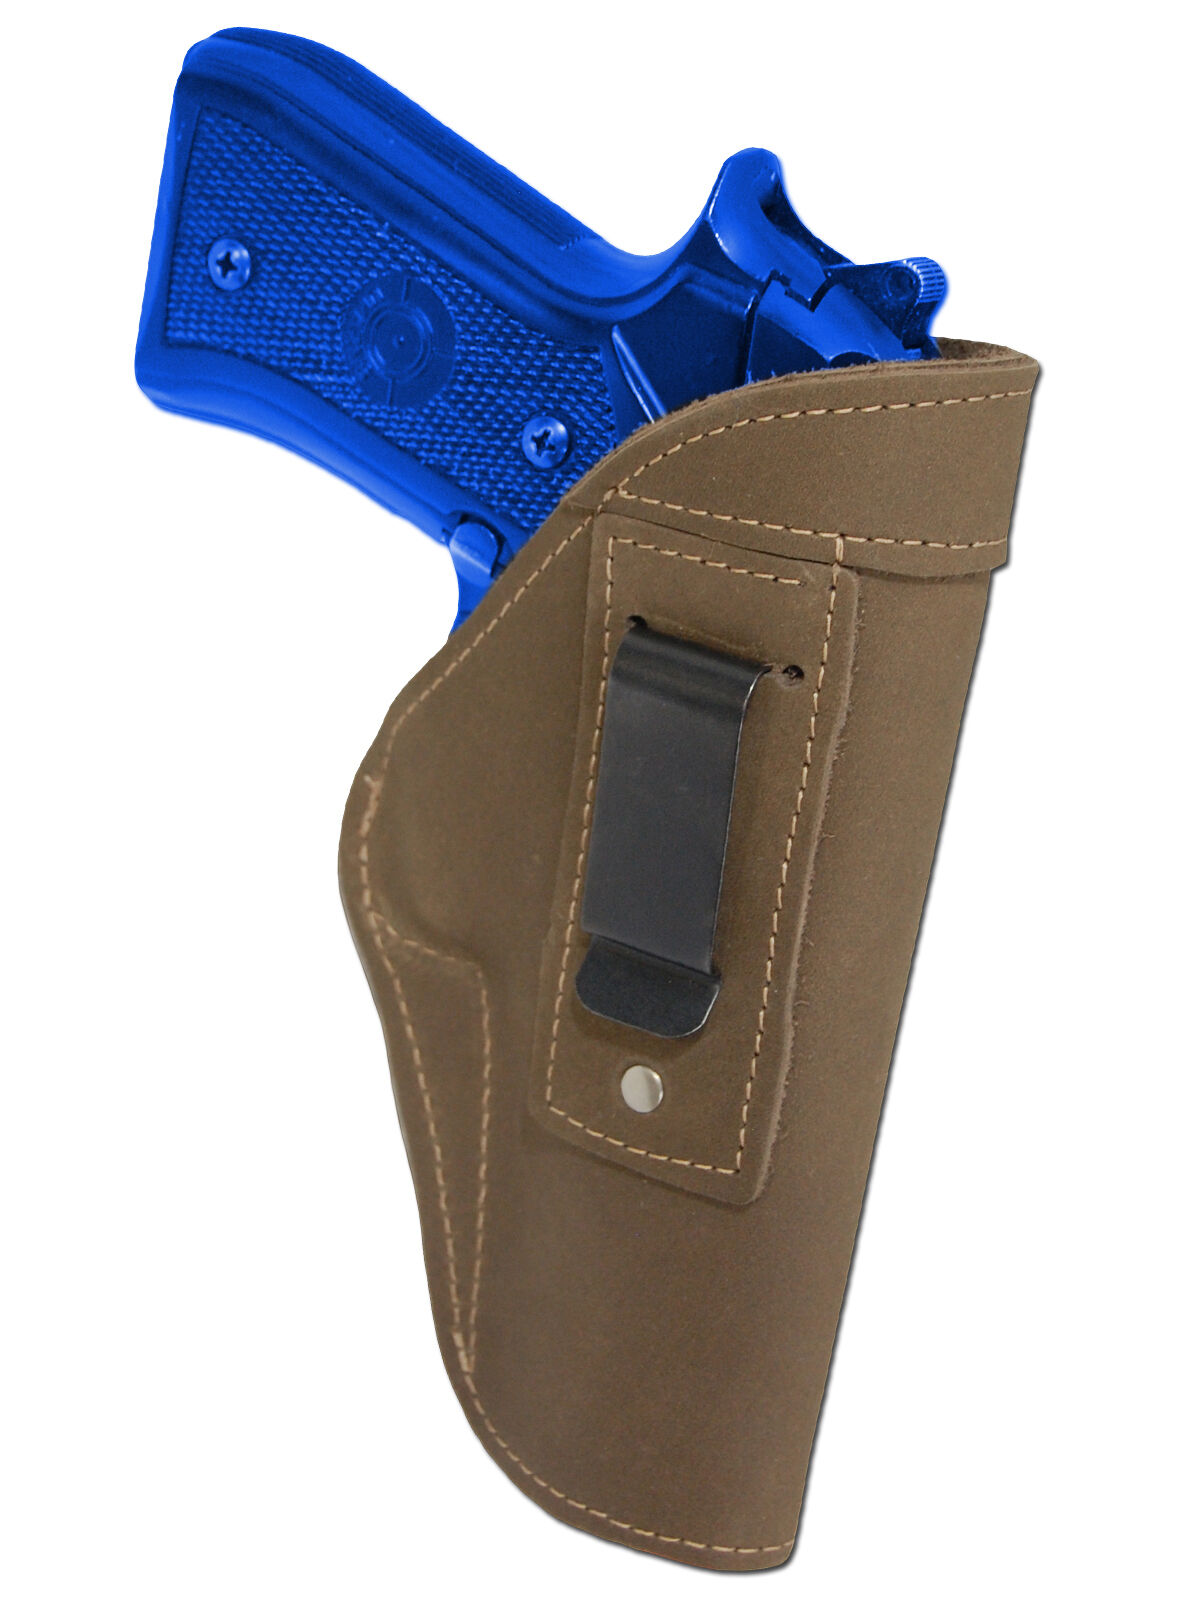 New Barsony Olive Drab IWB Holster + Mag Pouch Pouch Pouch Brauning Colt Full Größe 9mm 40 382c67